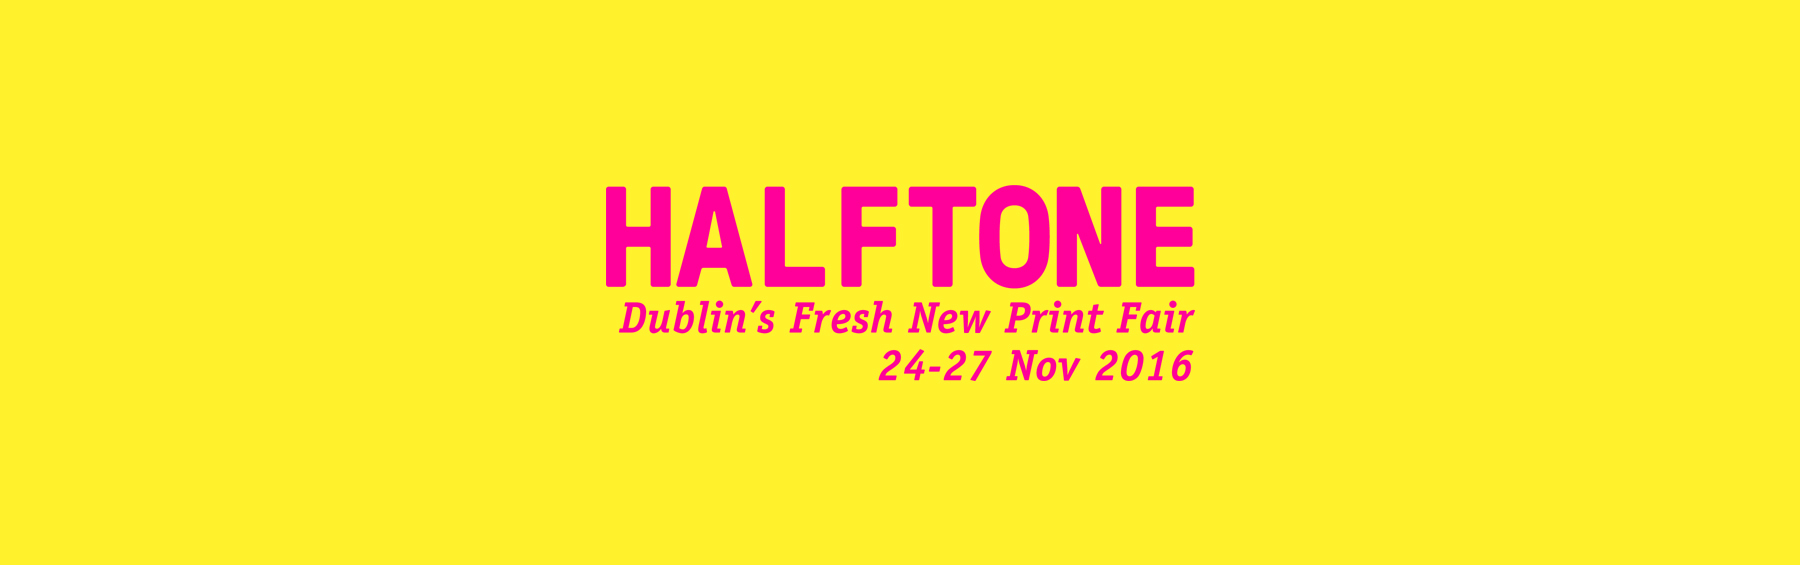 HALFTONE Dublin's Fresh New Print Fair takes place on 24-27 Nov 2016.